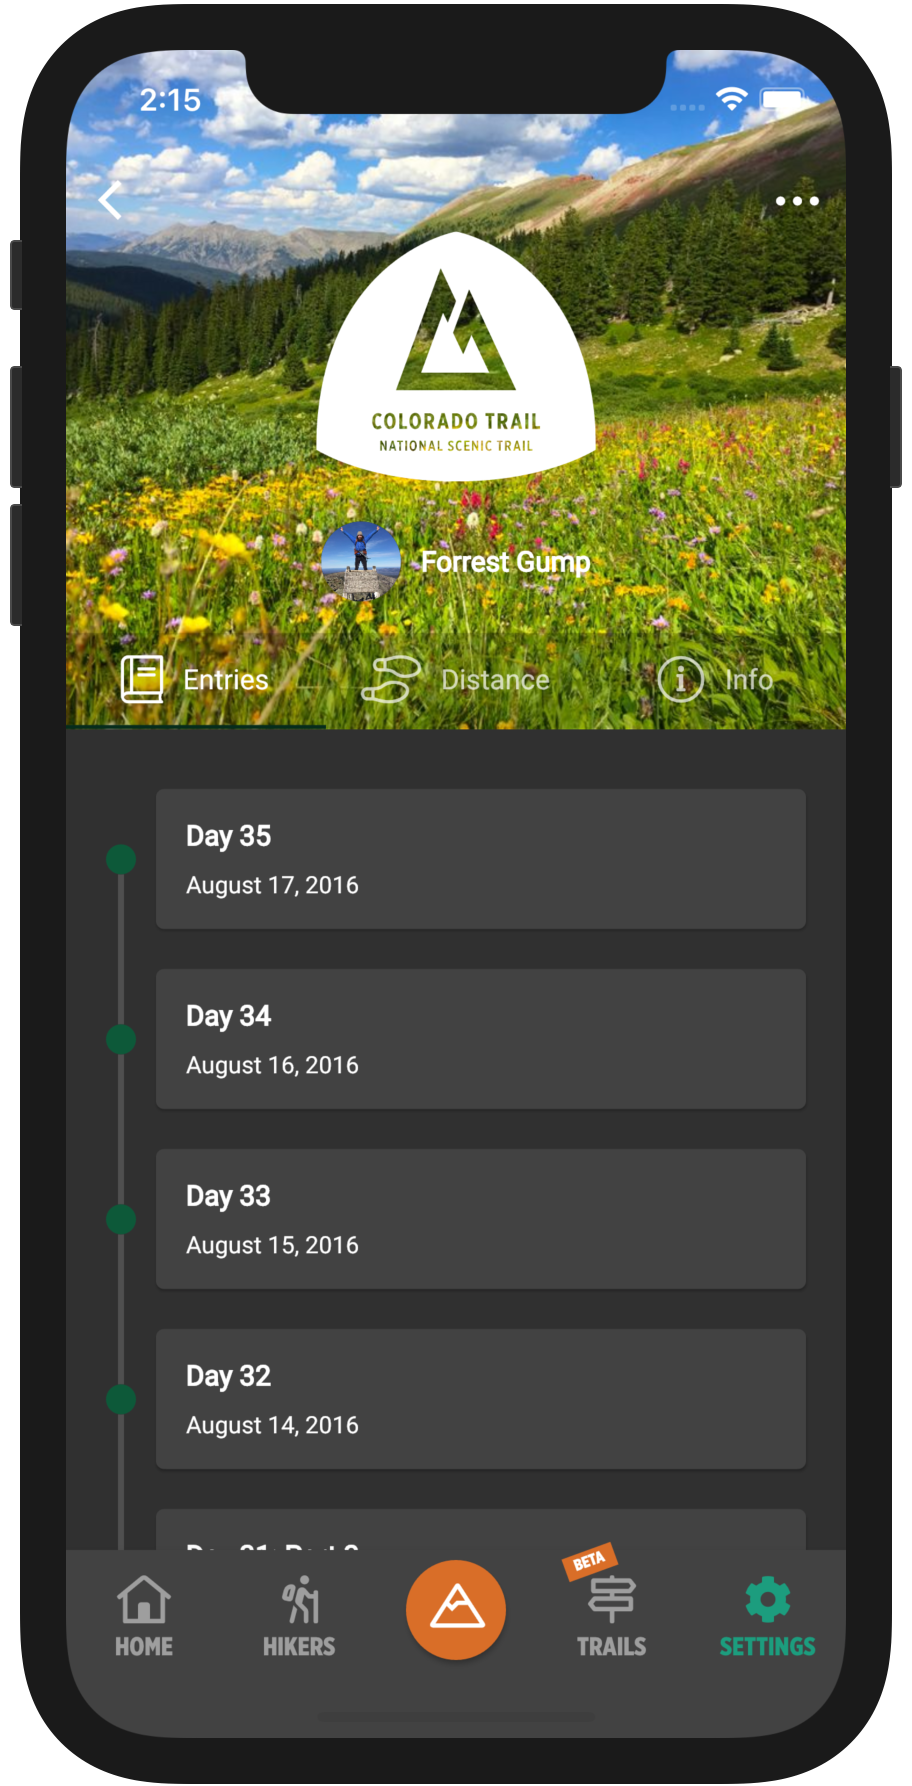 HikerFeed Mobile Screenshot - Hike Entries